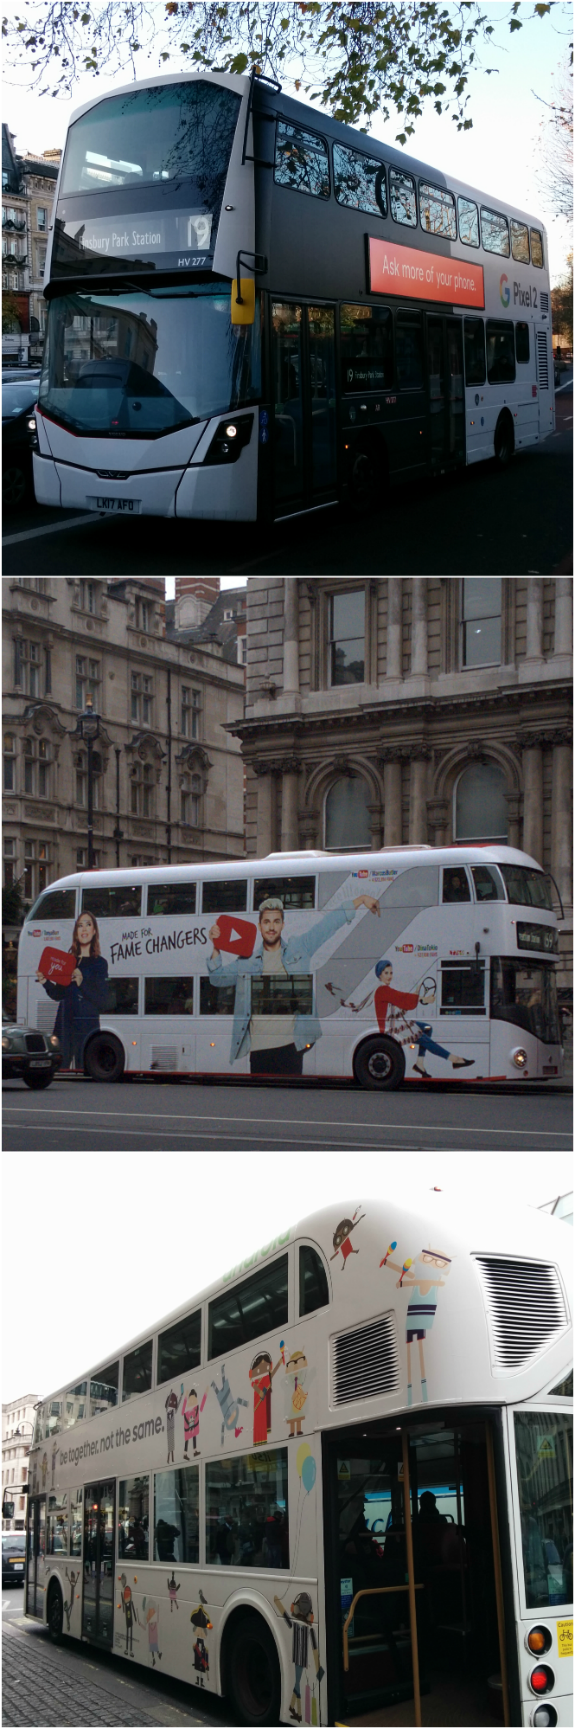 A photograph of London buses with fully-wrapped advertisements for Google products: Android (photographed: 28 February 2015); YouTube (30 December 2016); Pixel 2 (25 November 2017)